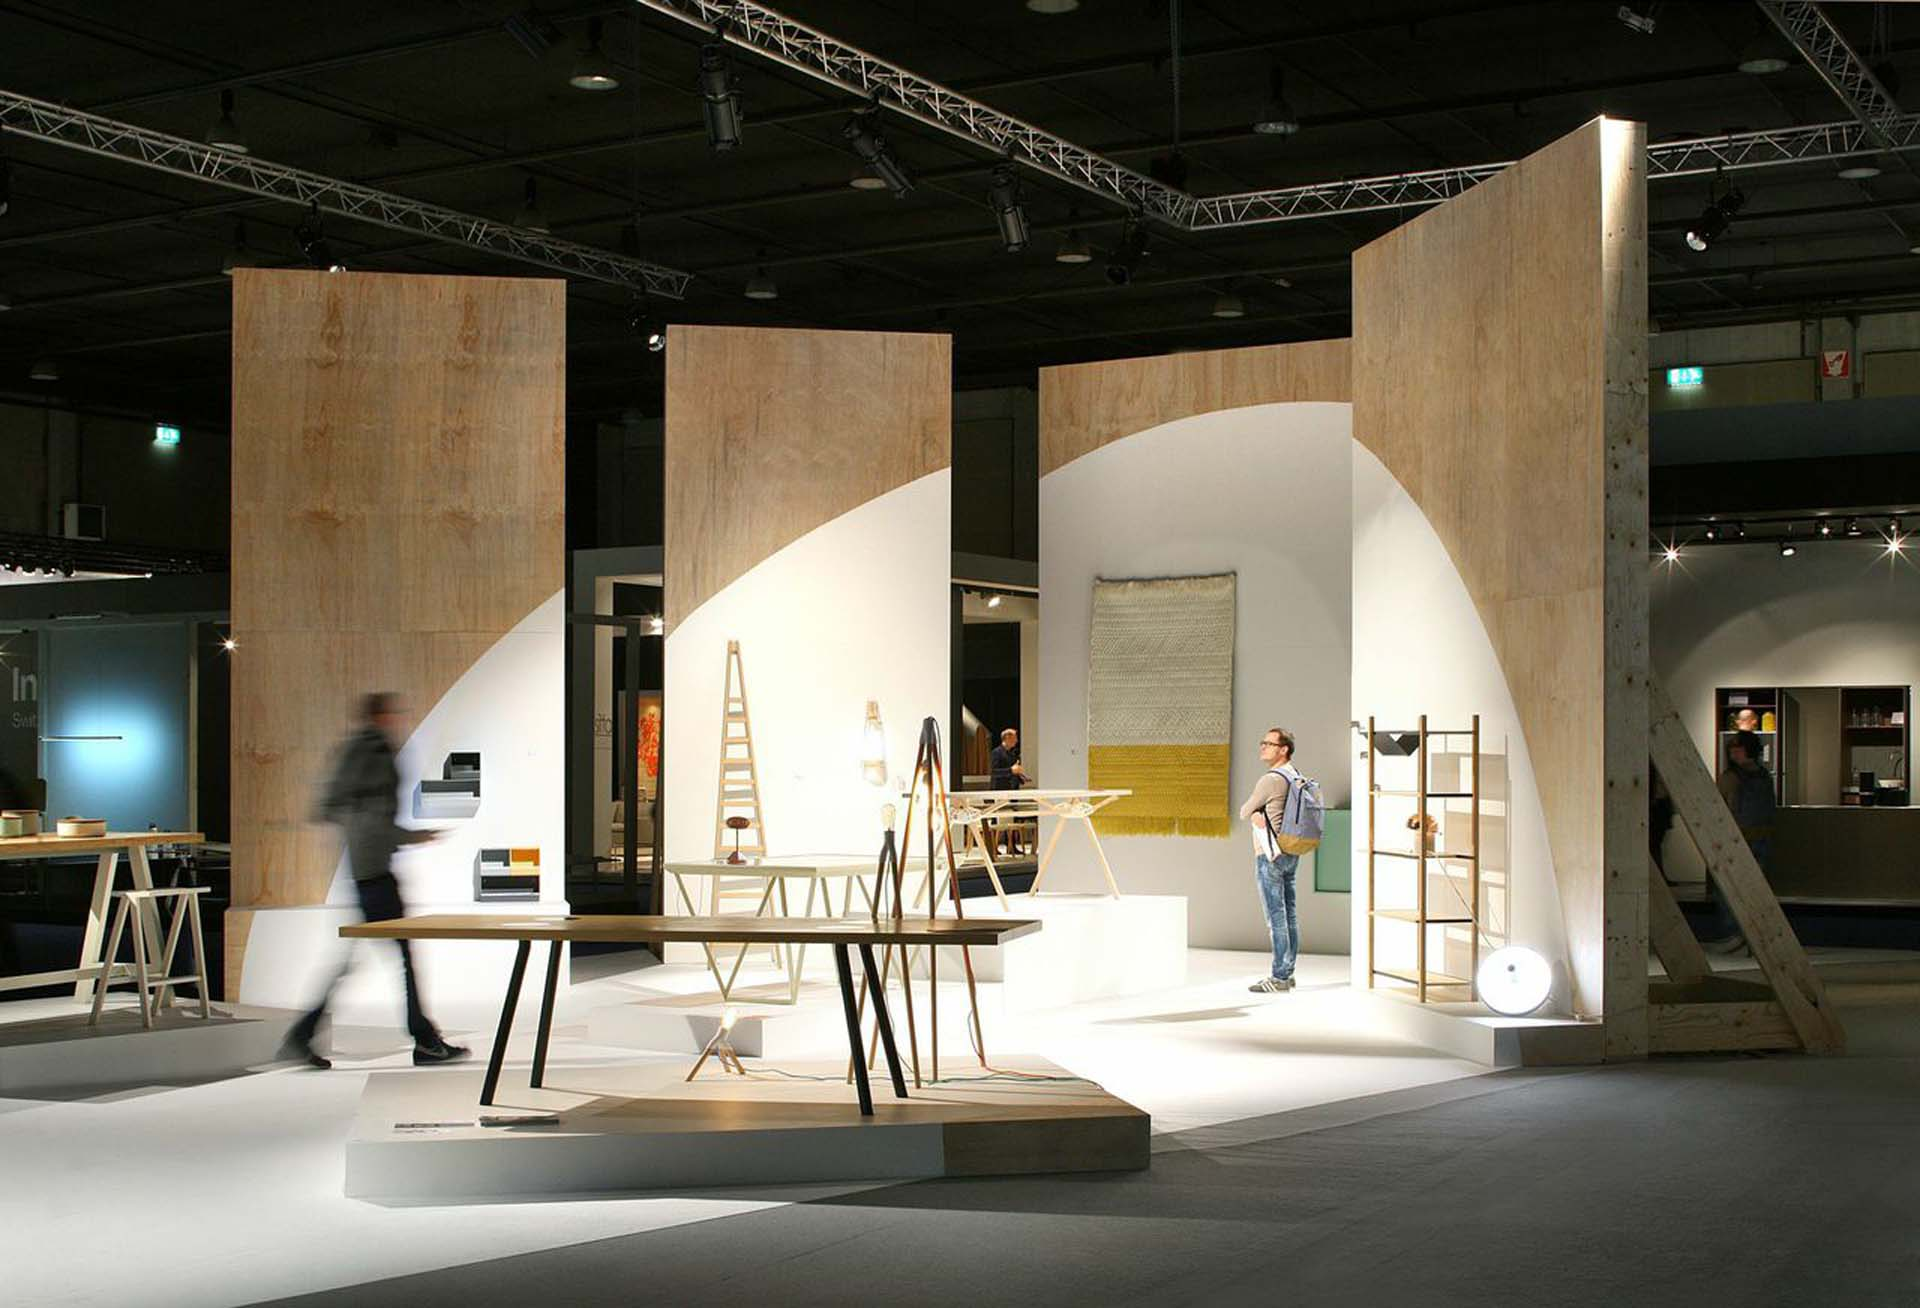 interview with joseph grima at the kortrijk interieur on